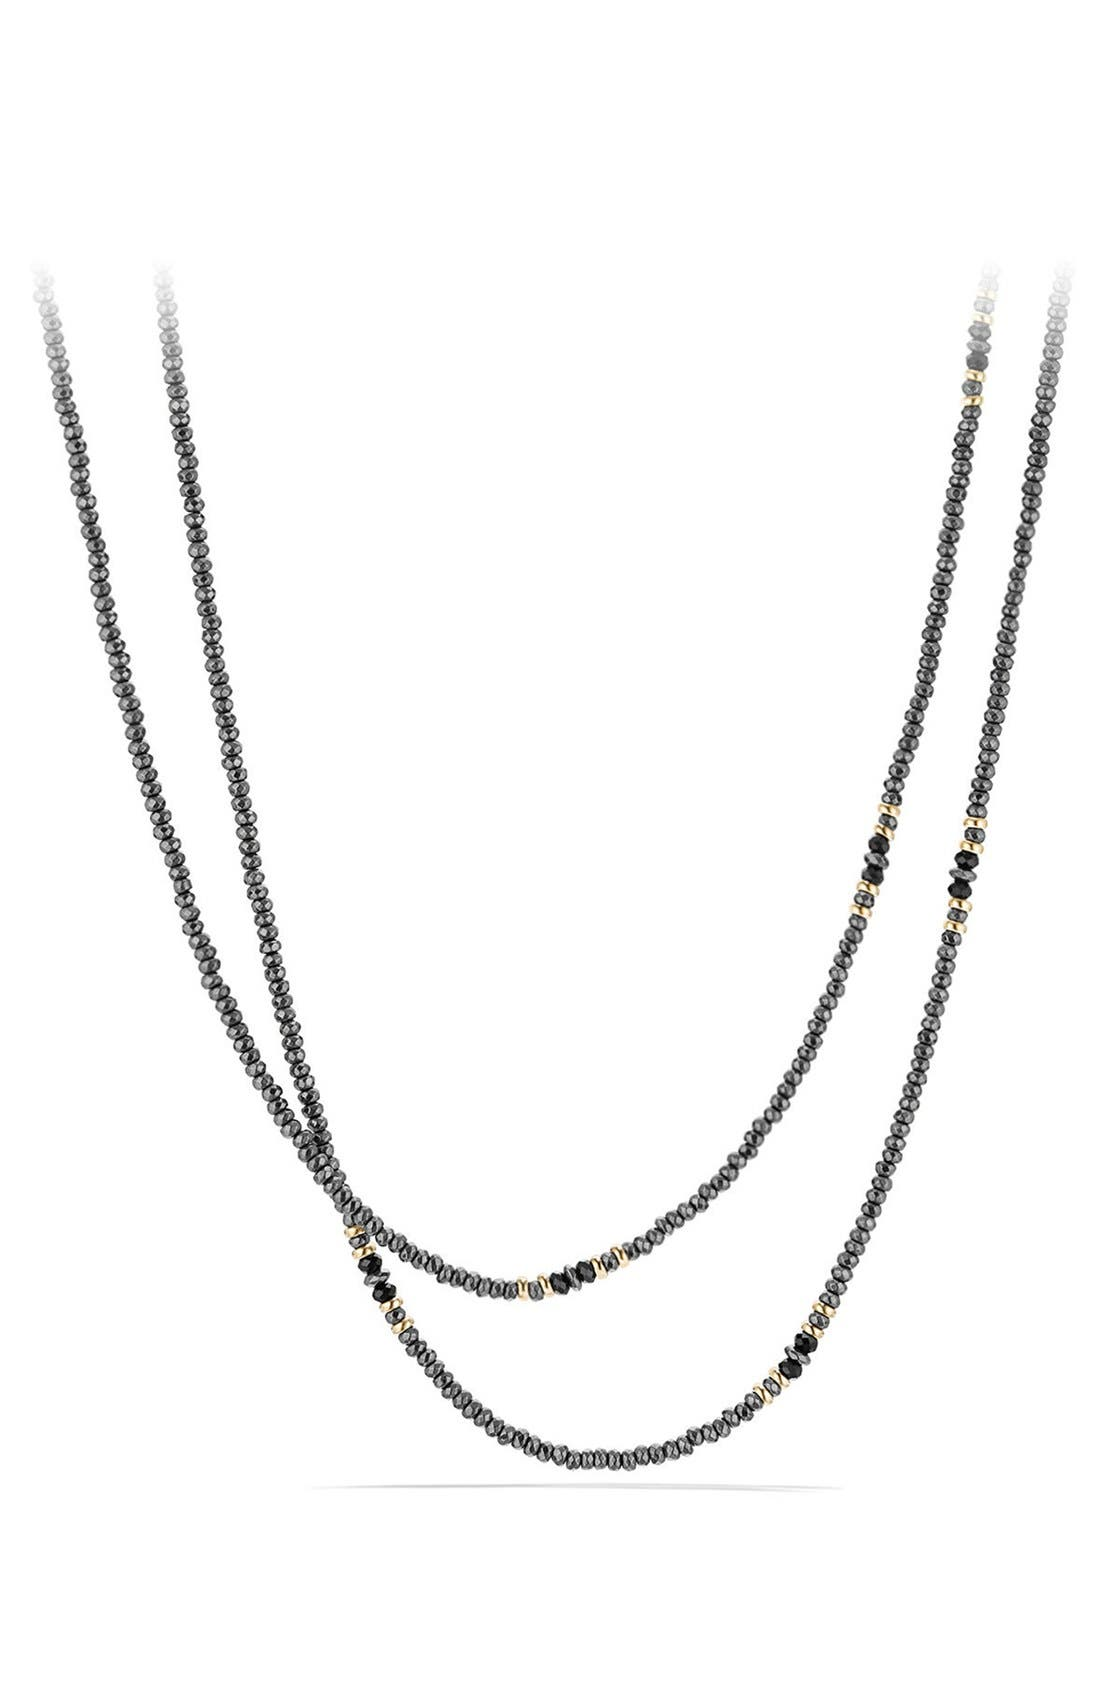 Alternate Image 1 Selected - David Yurman Osetra Tweejoux Necklace with 18K Gold